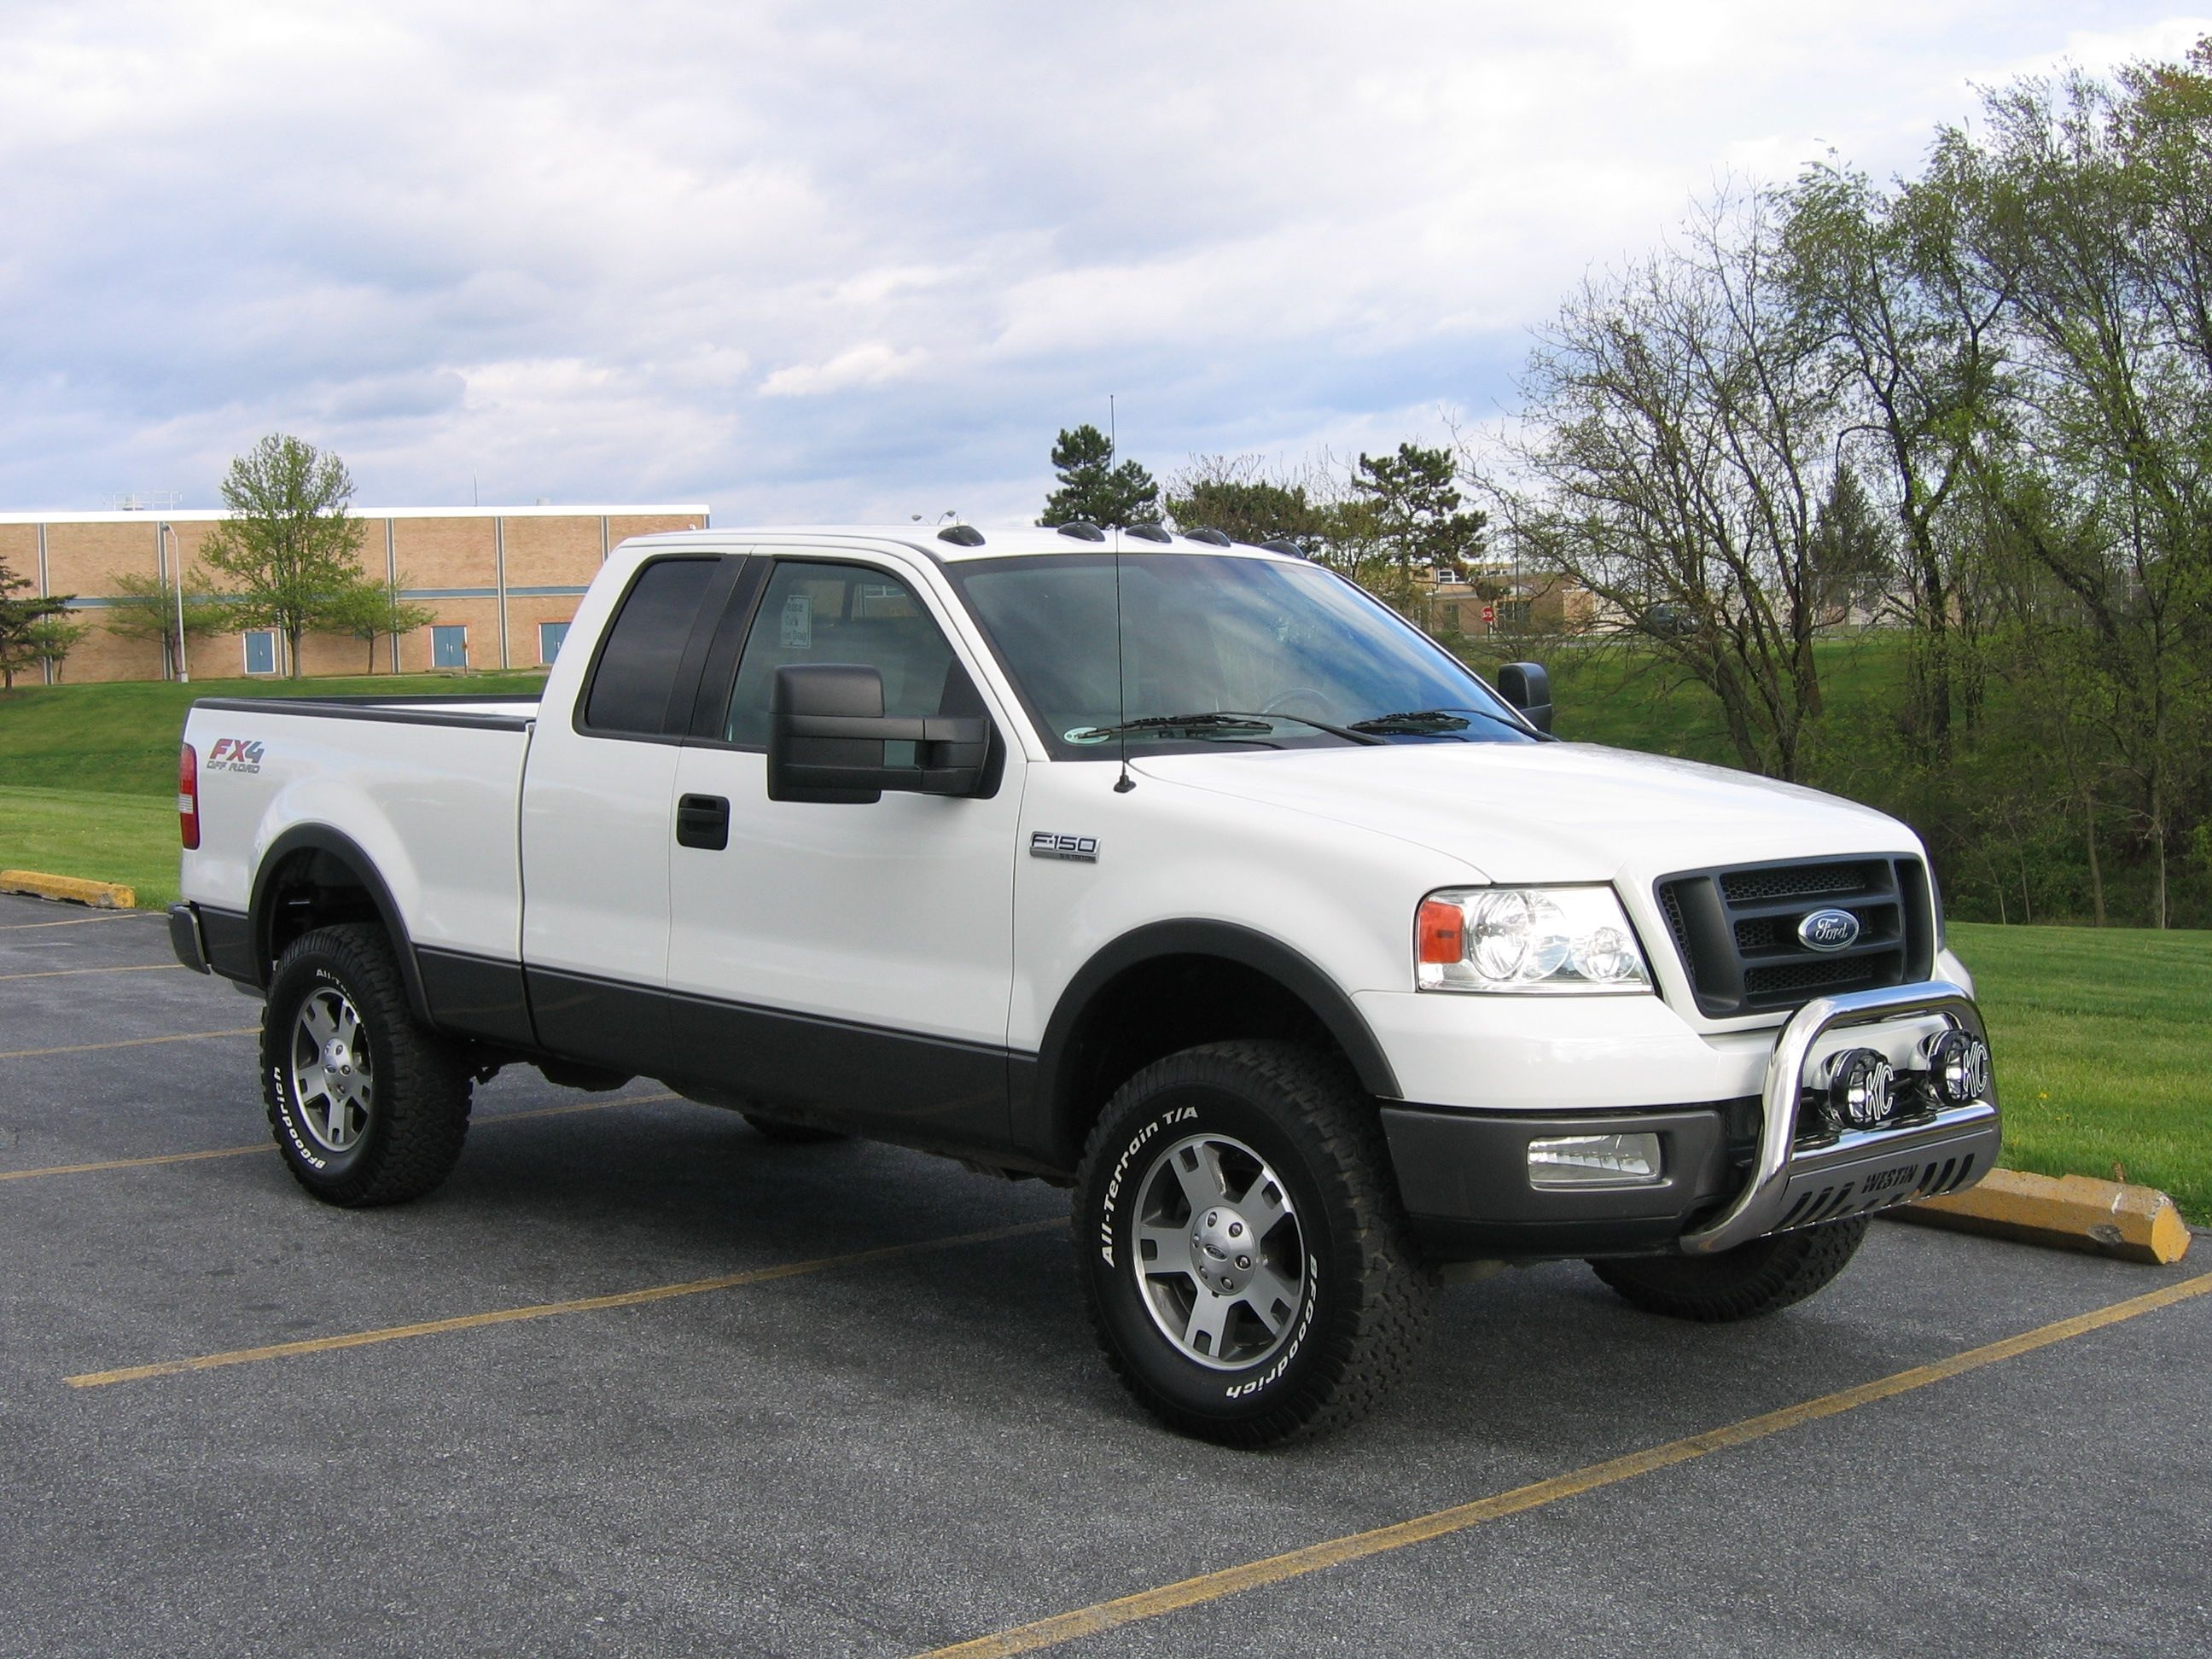 1sheltie 2004 Ford F150 Super Cab 14411546 2004 ford